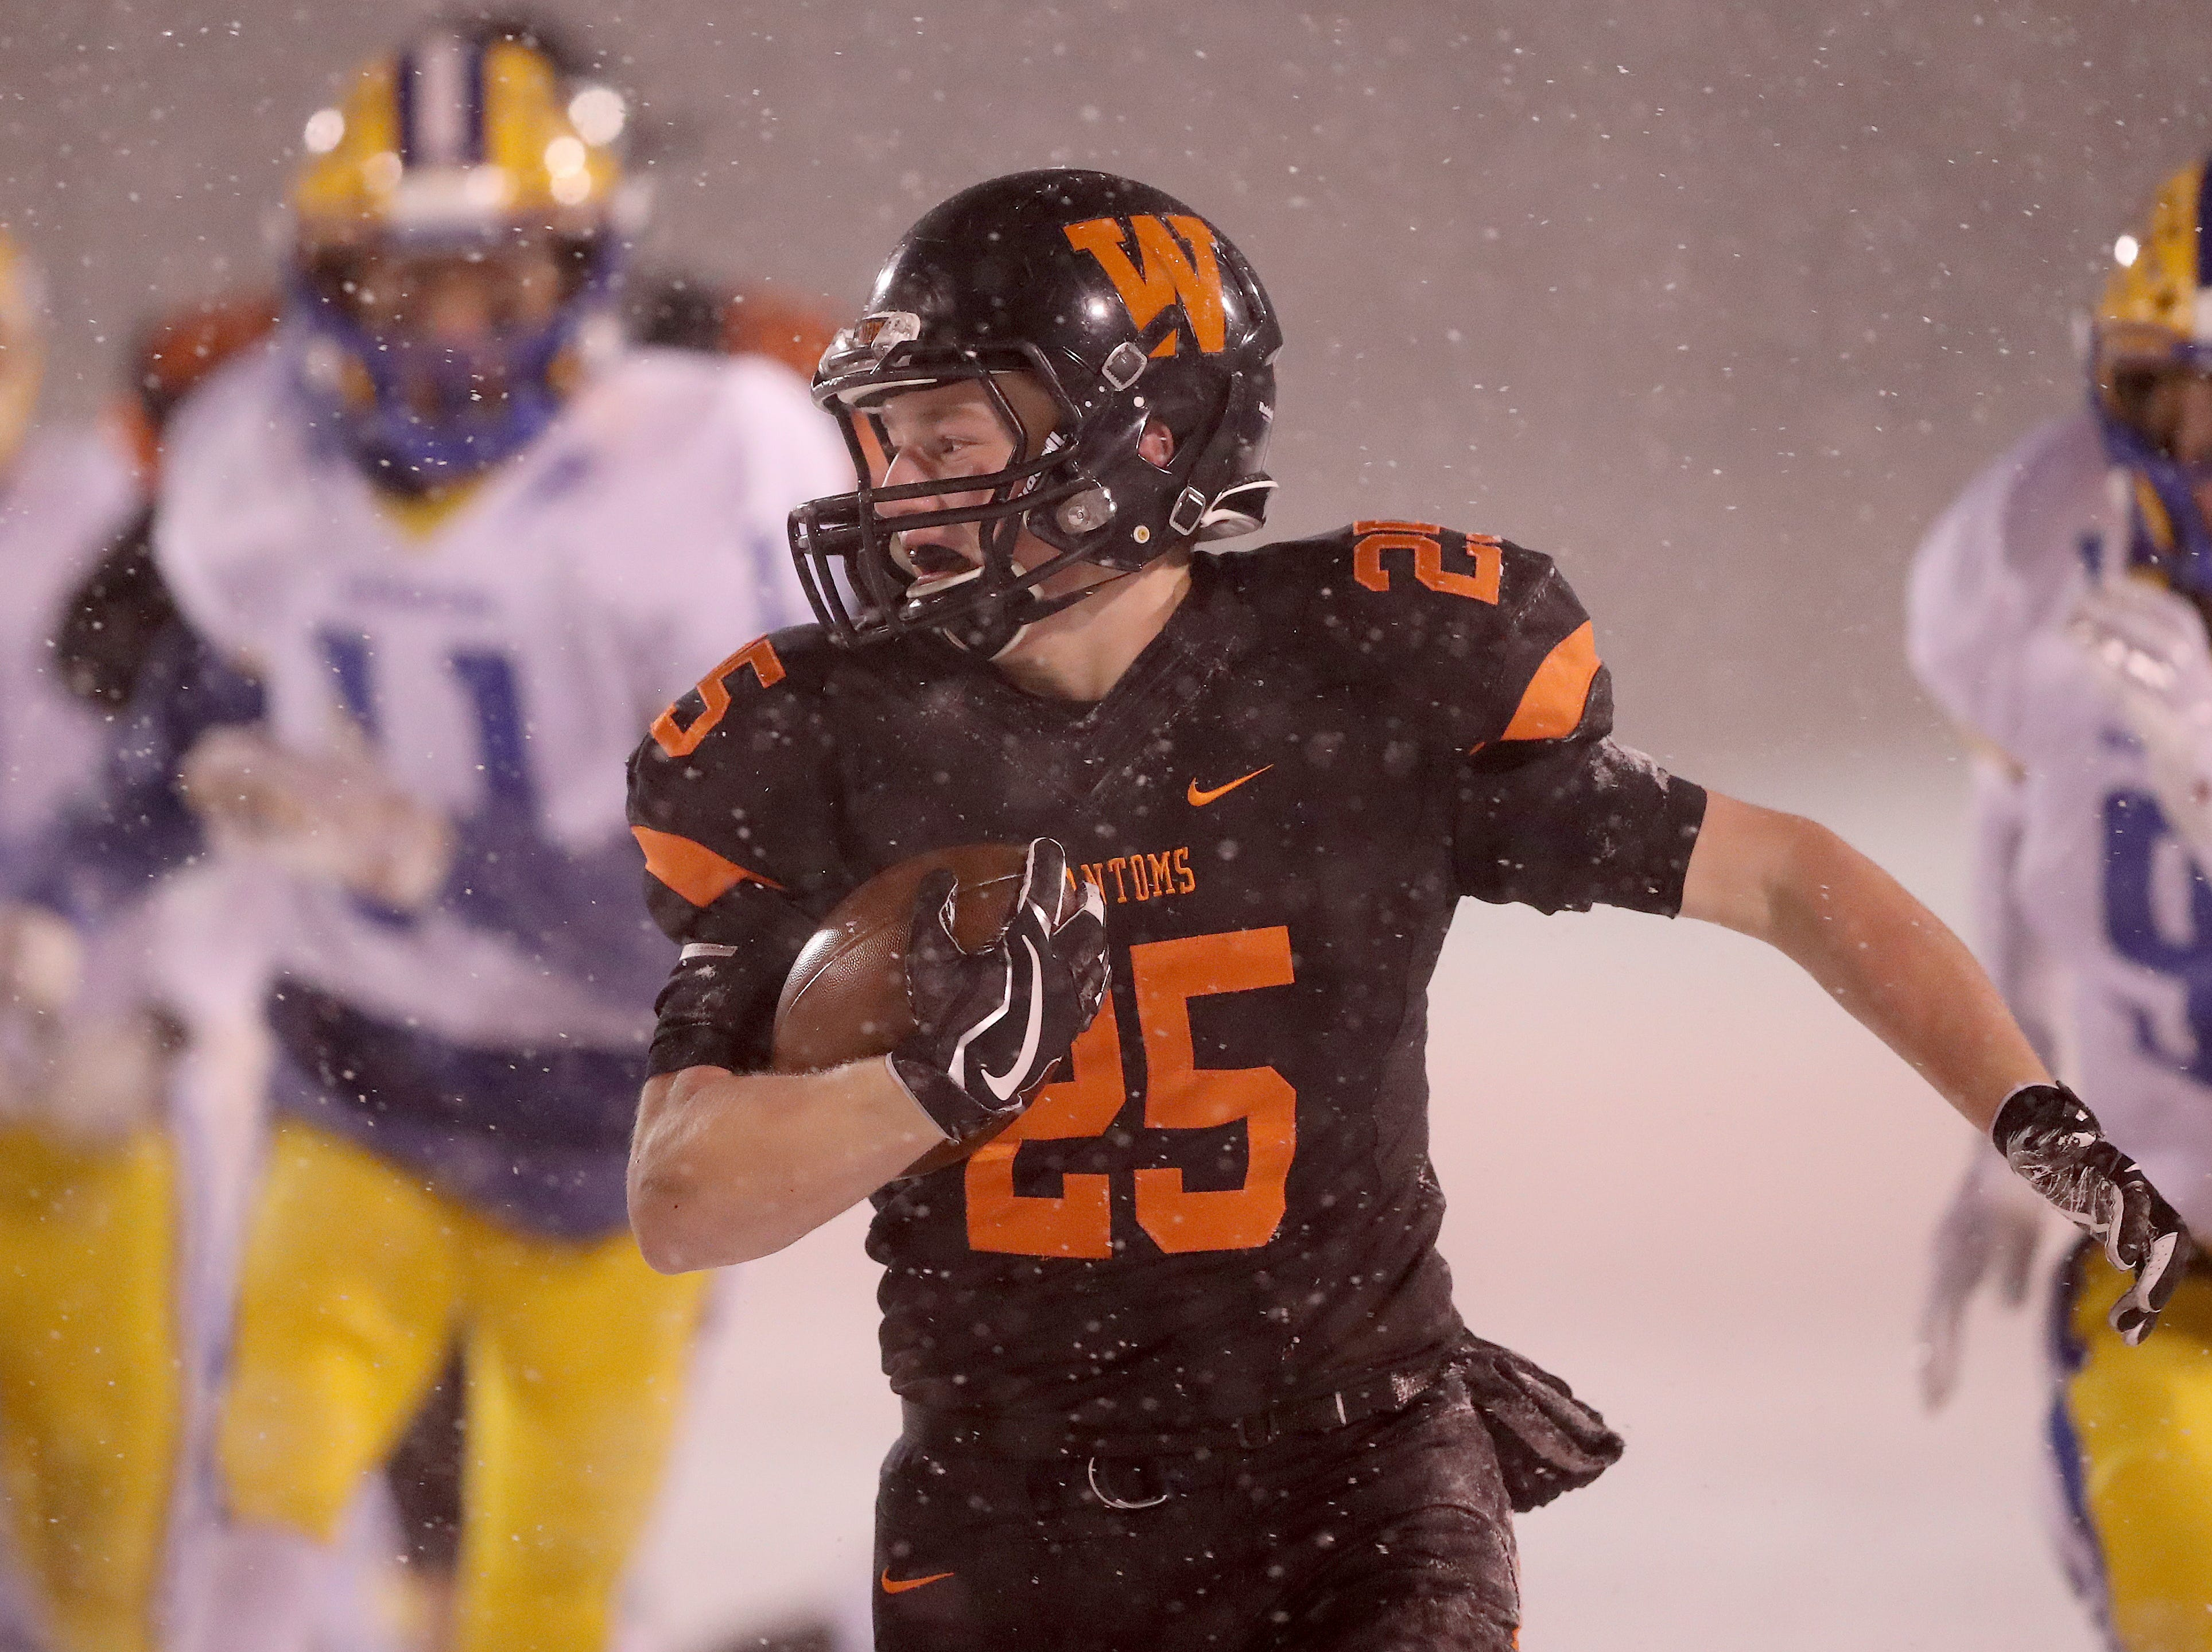 West De Pere's Kaden Kosobucki runs through the defense against Rice Lake in the Division 3 Level 4  WIAA playoffs Friday, November 9, 2018 at DC Everest High School in Weston, Wis.